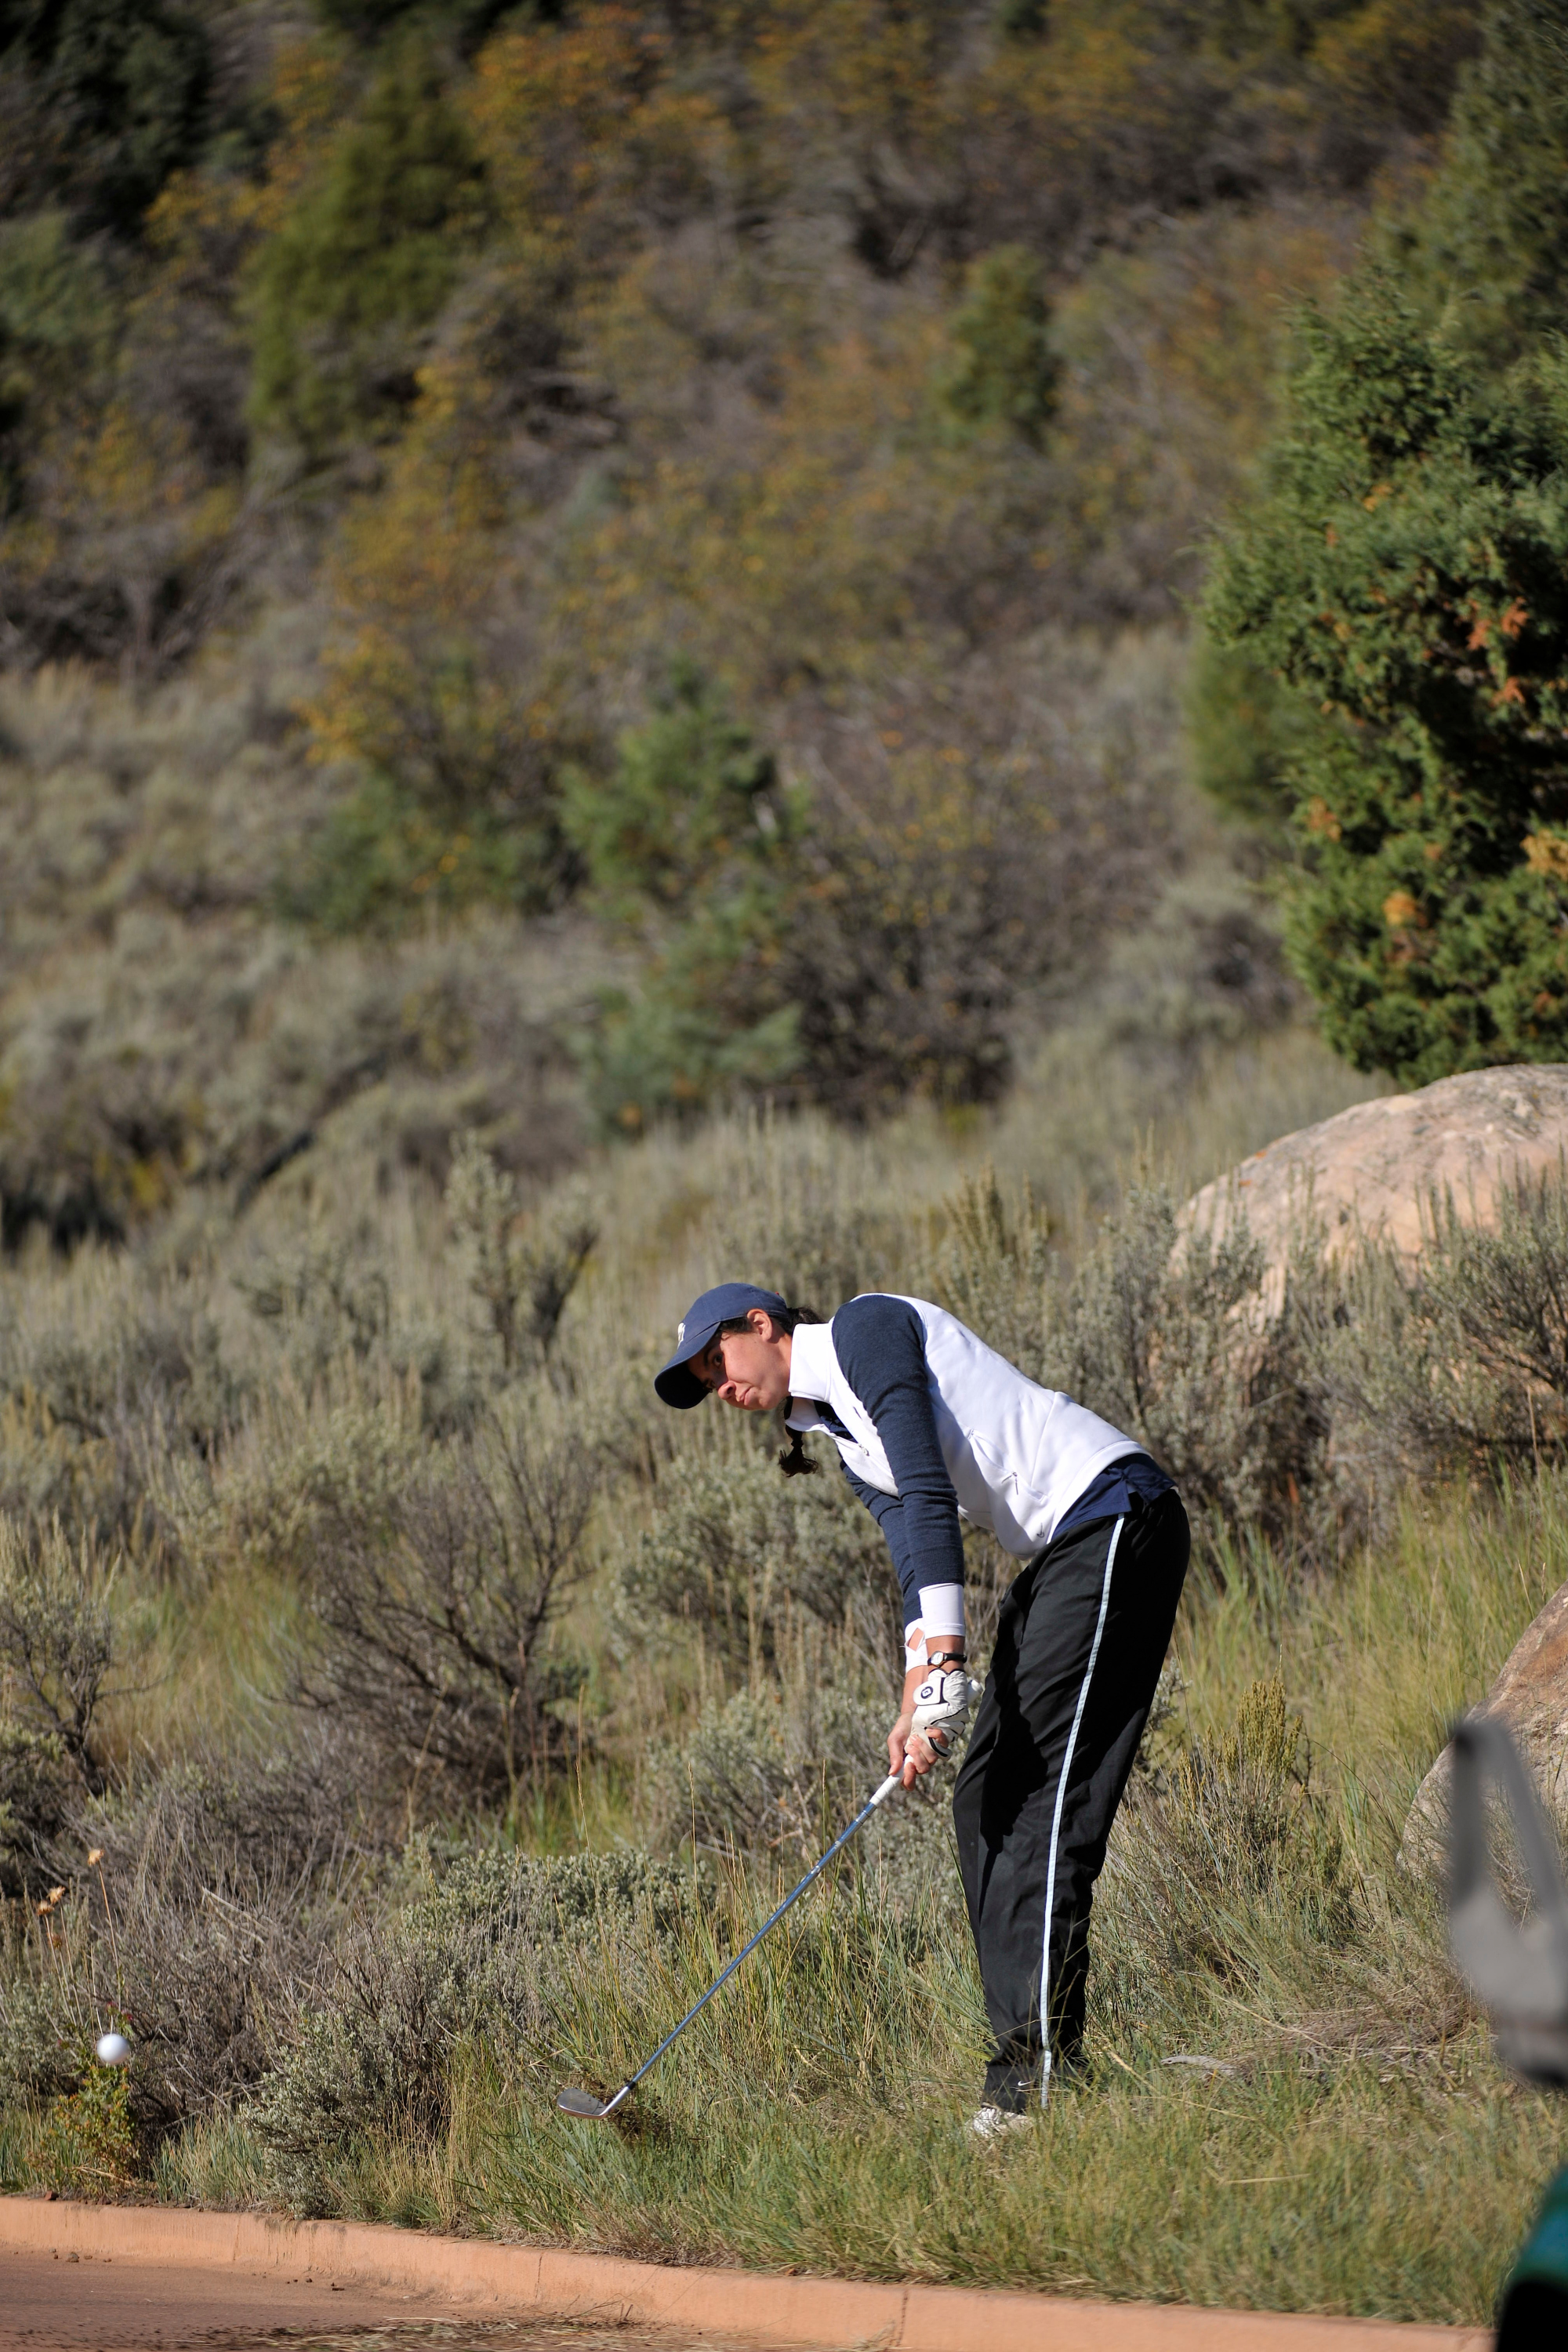 The Georgetown University women's golf team fired a 14-over par 302 in the second round and moved into sixth place at the Ron Moore Women's Intercollegiate, being hosted by the University of Denver at the Highlands Ranch Golf Club in Colorado.